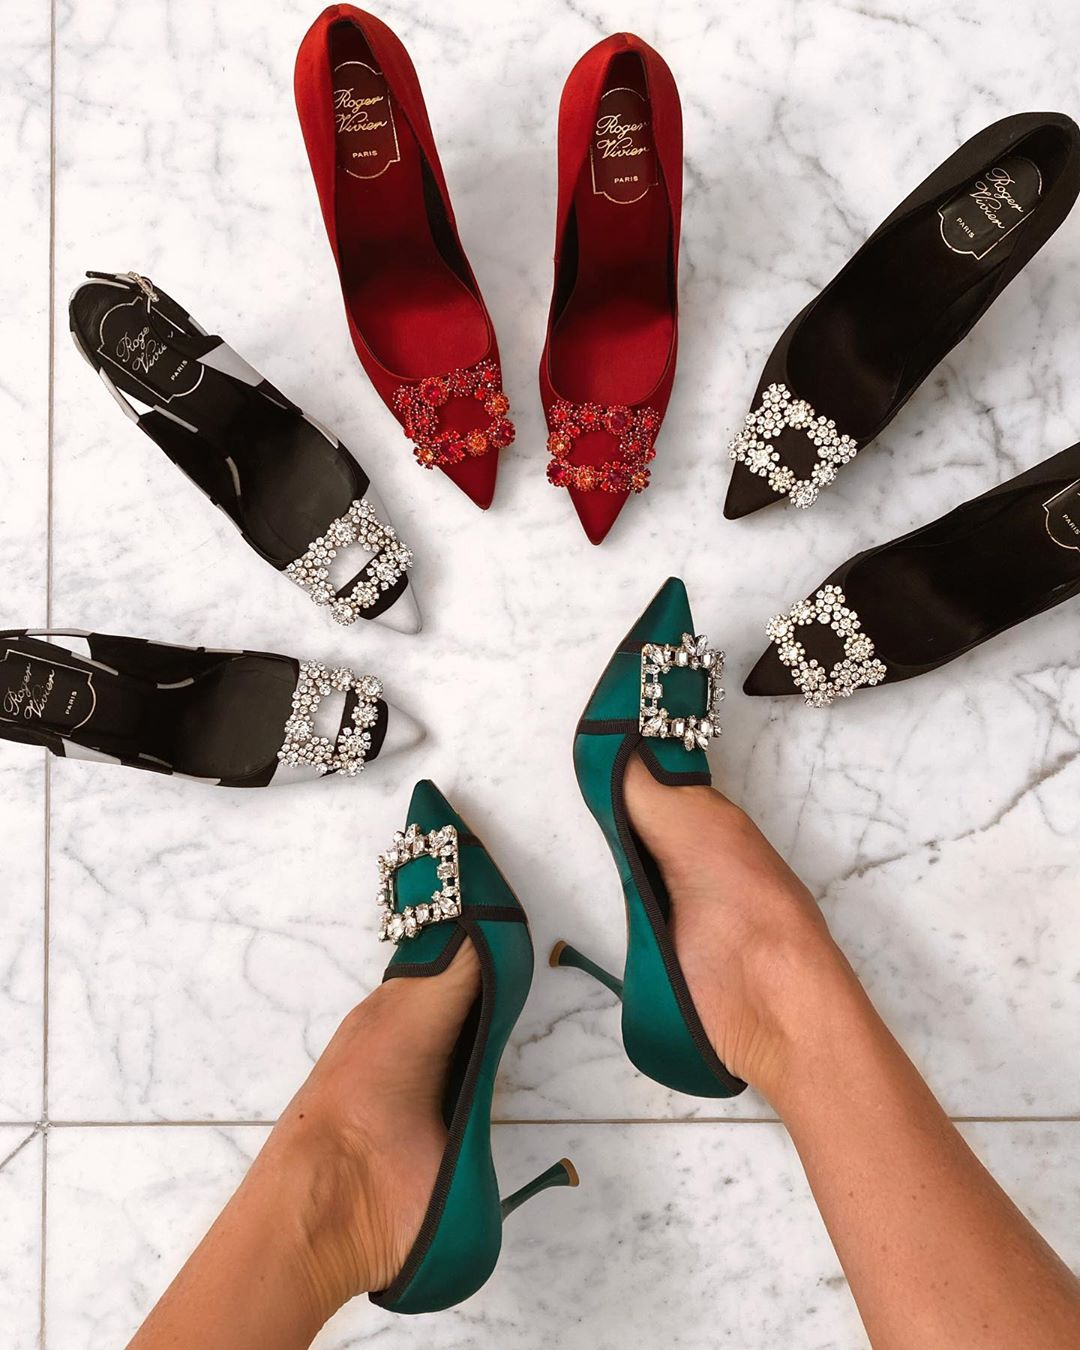 Pointed Toe Heels Shoes with Crystal Buckles.